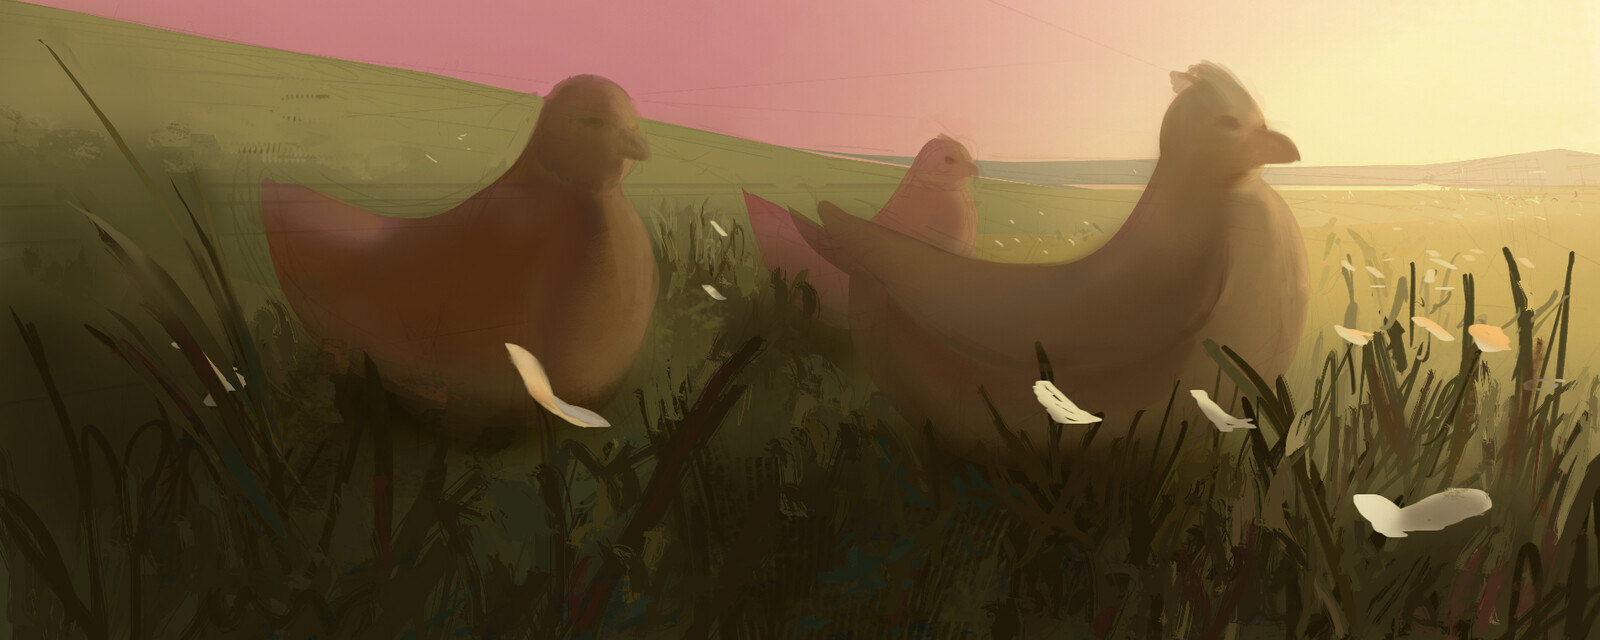 field chickens